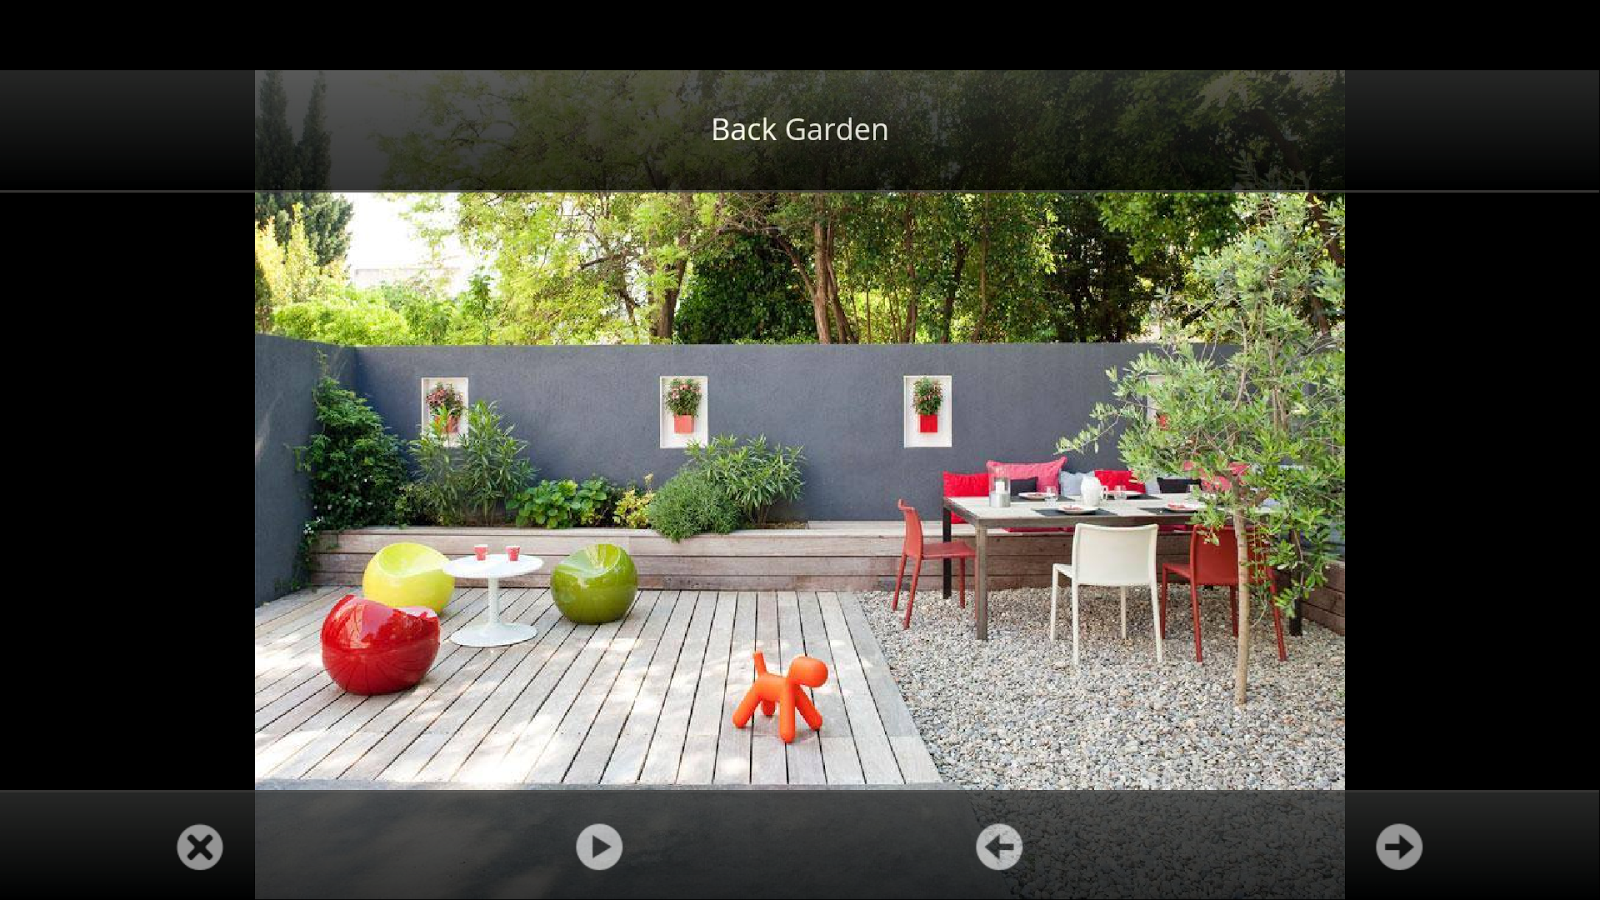 Backyard Design App backyard landscape design app Landscape Garden Decor Screenshot